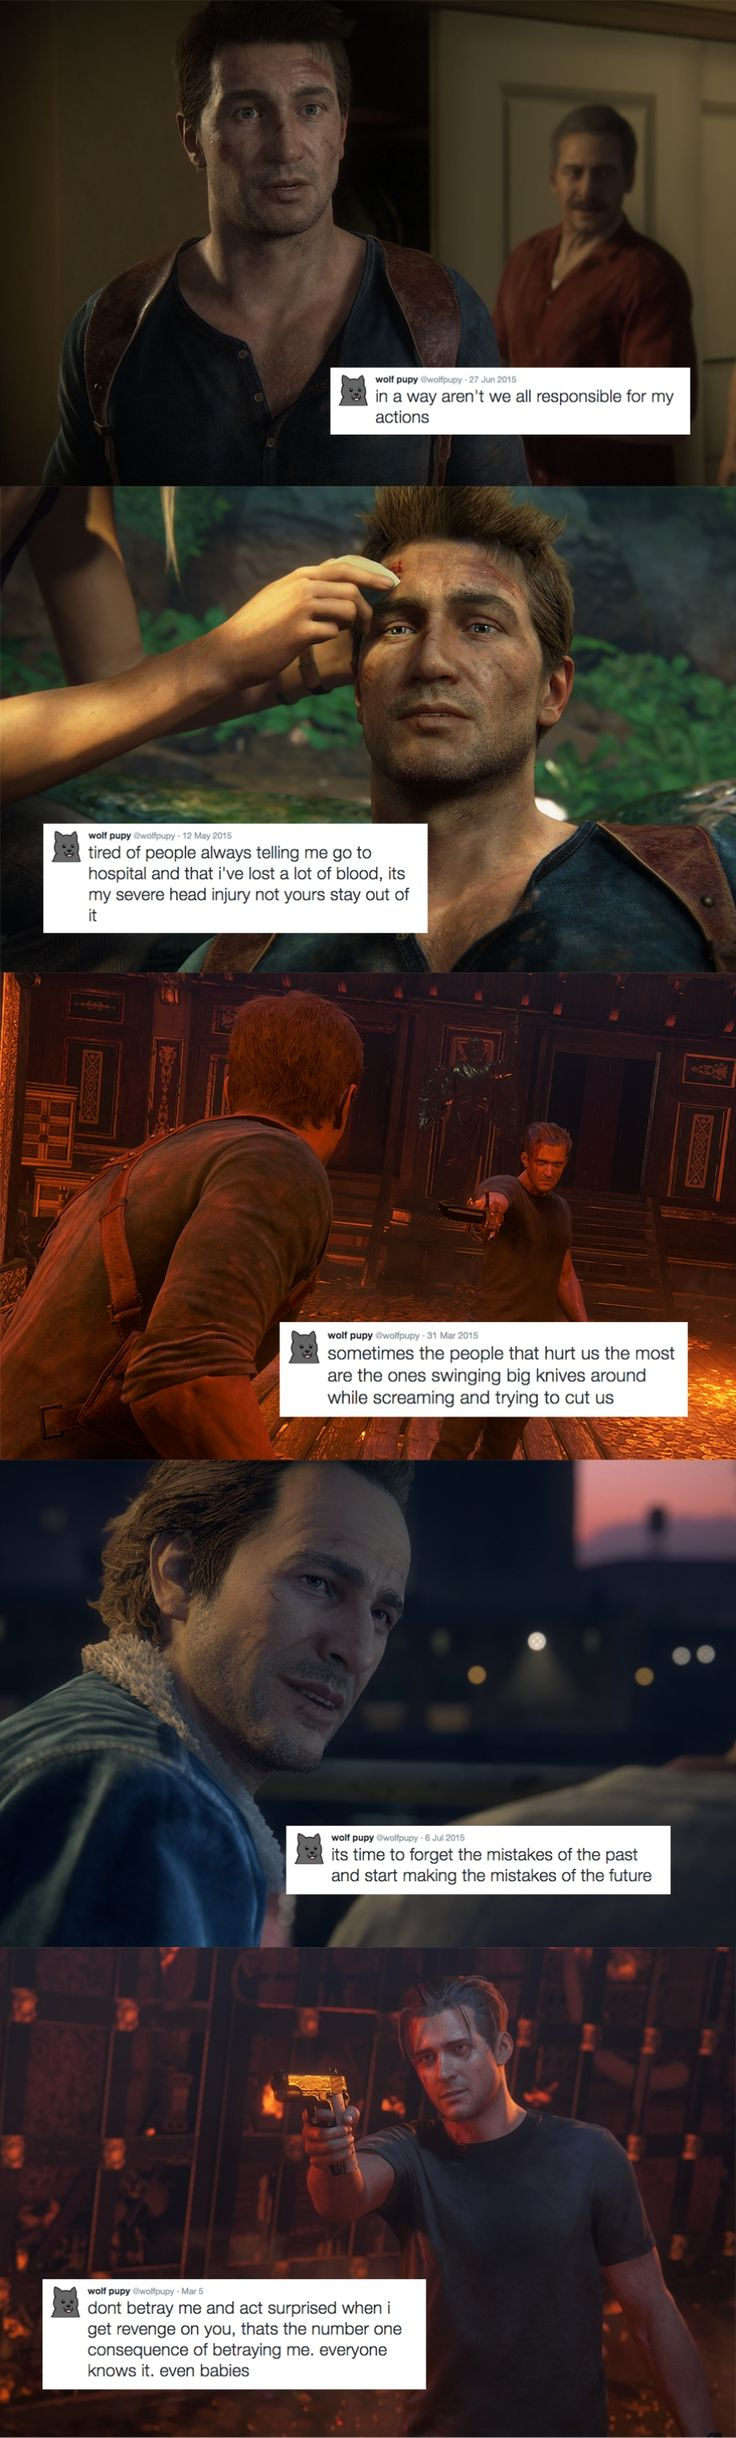 Uncharted 4: A Thief's End text posts